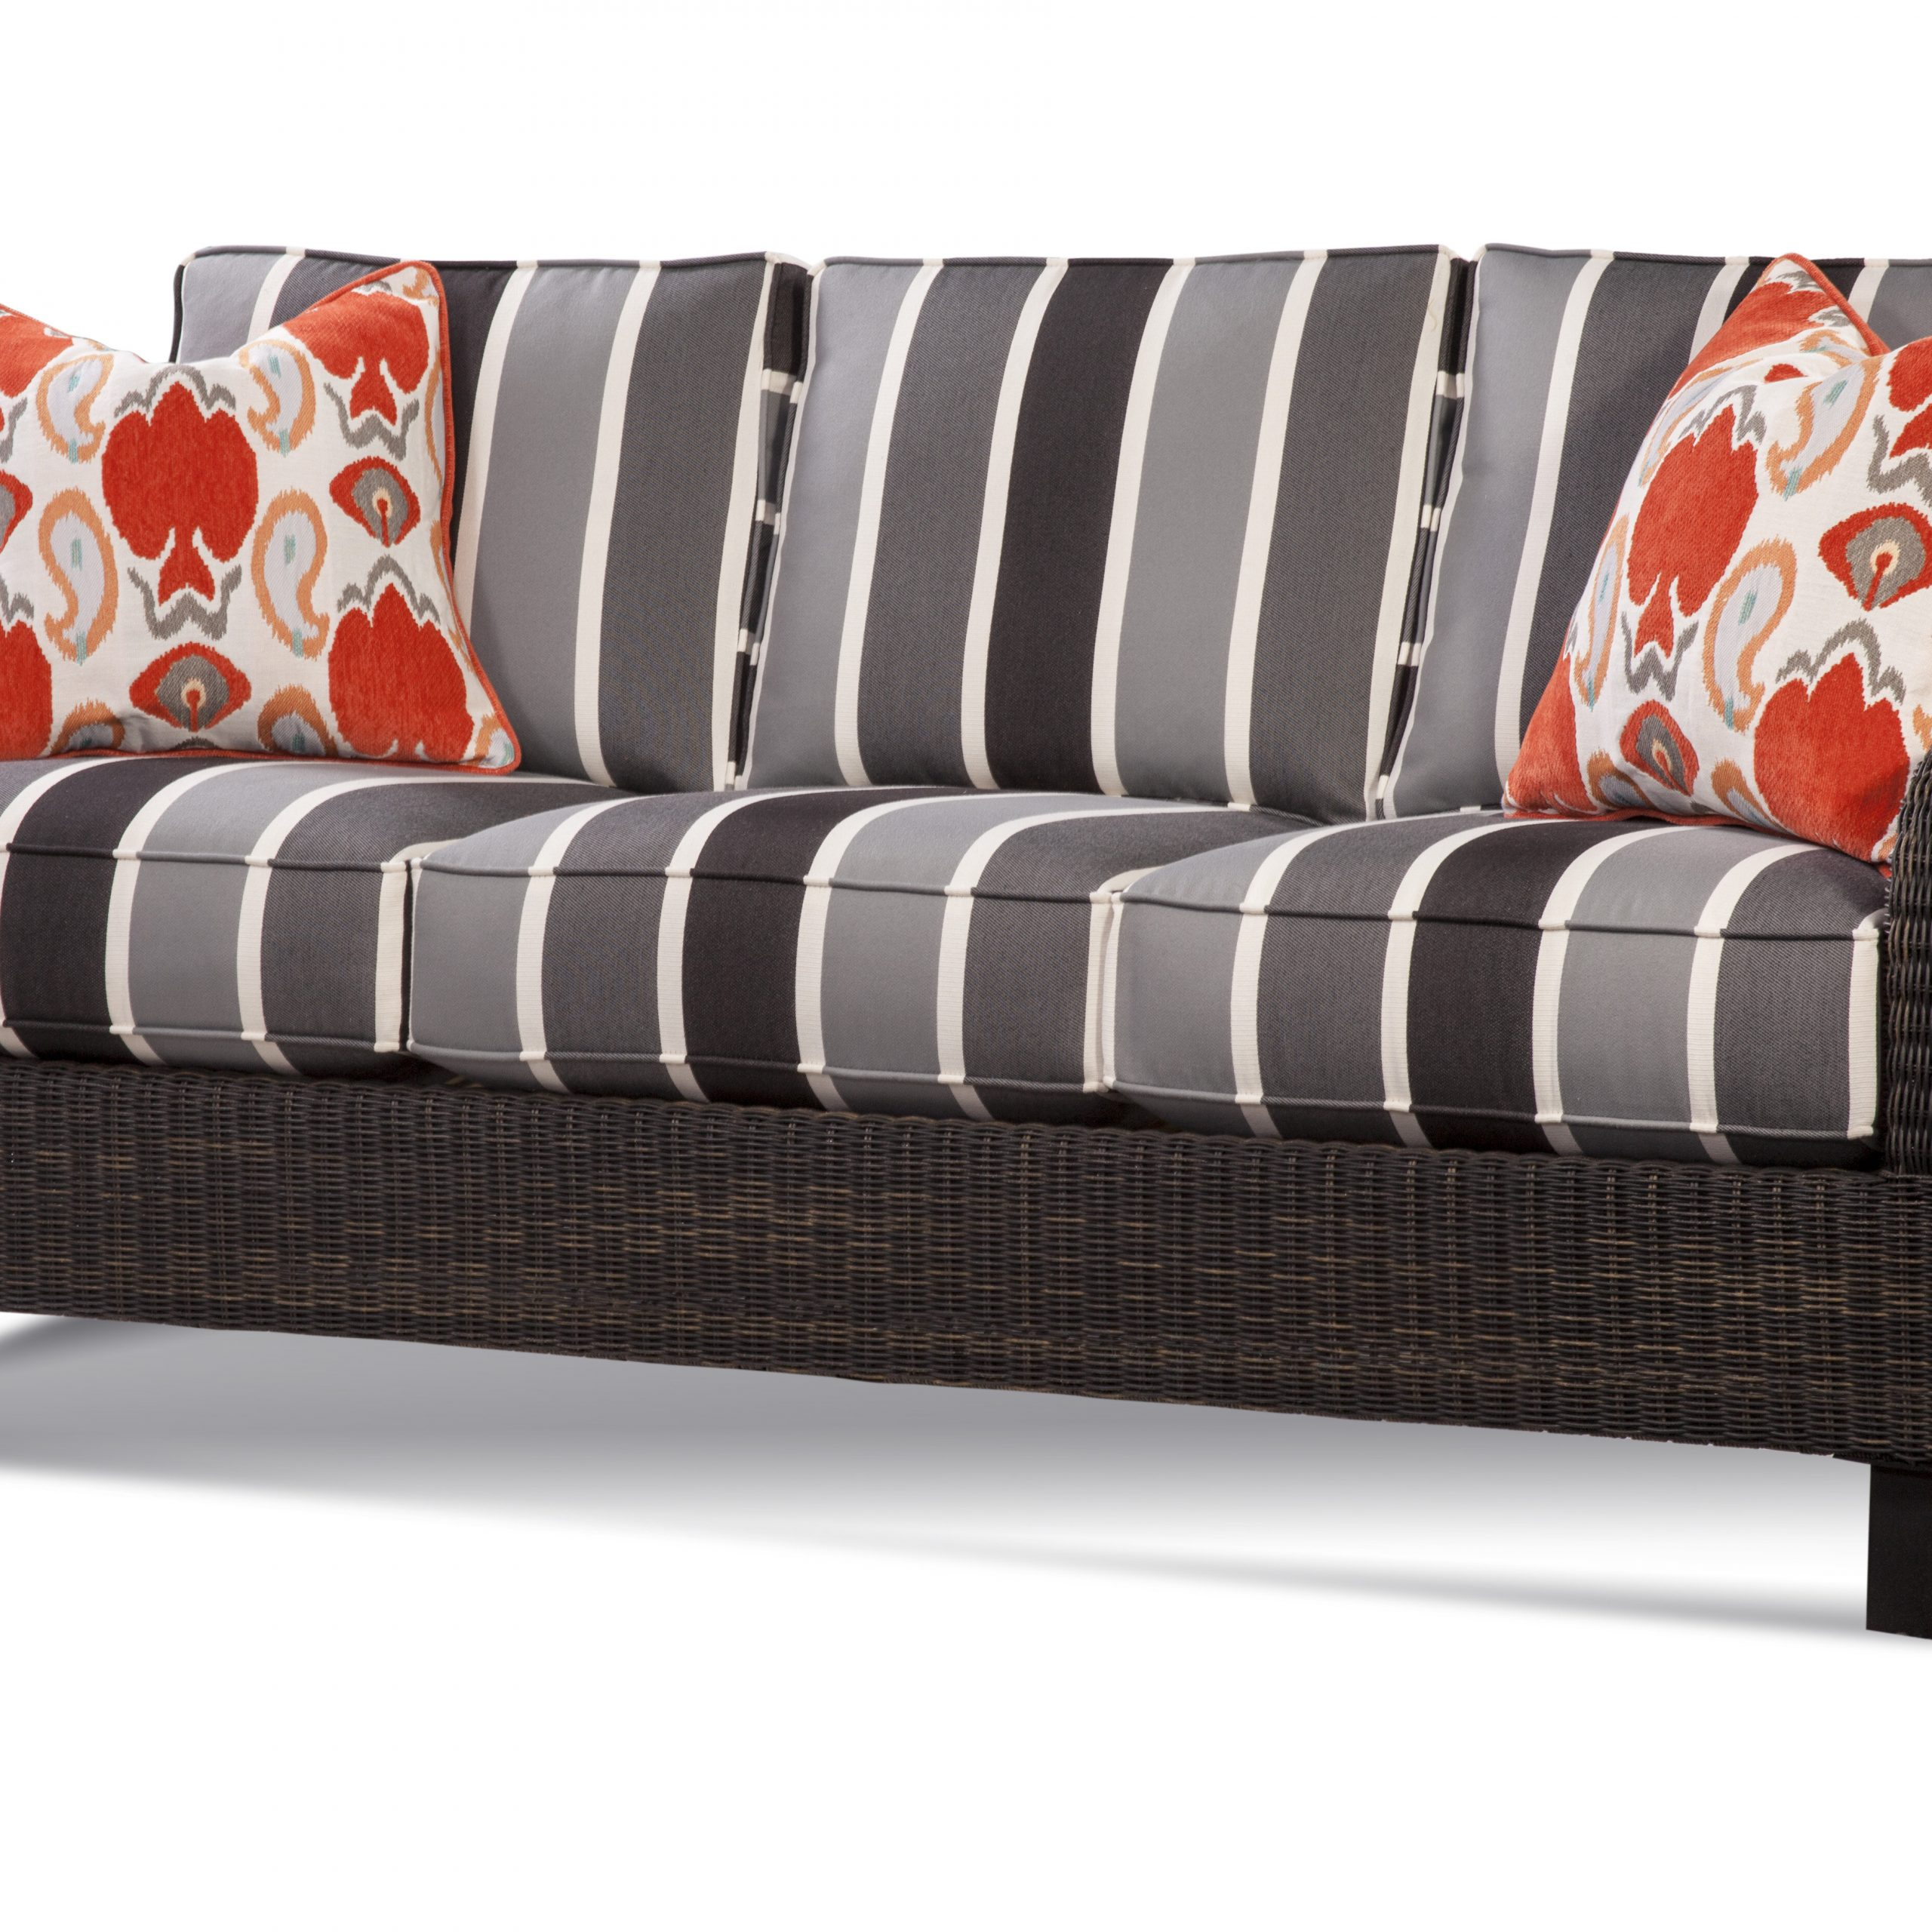 Tangier Patio Sofa With Cushions For Well Known Astrid Wicker Patio Sofas With Cushions (View 12 of 25)